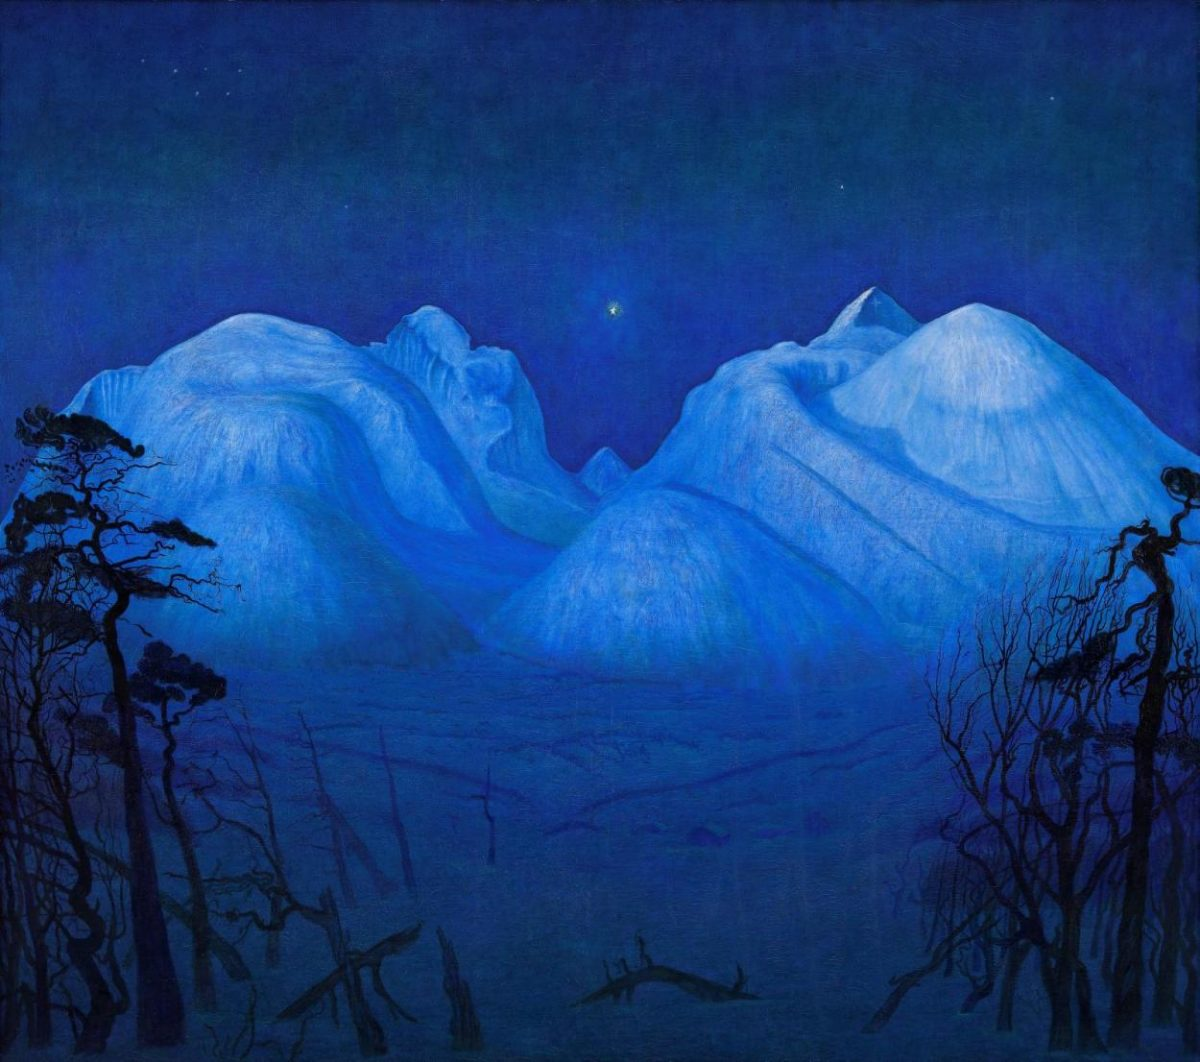 Harald Sohlberg, Winter Night in the Mountains, 1914